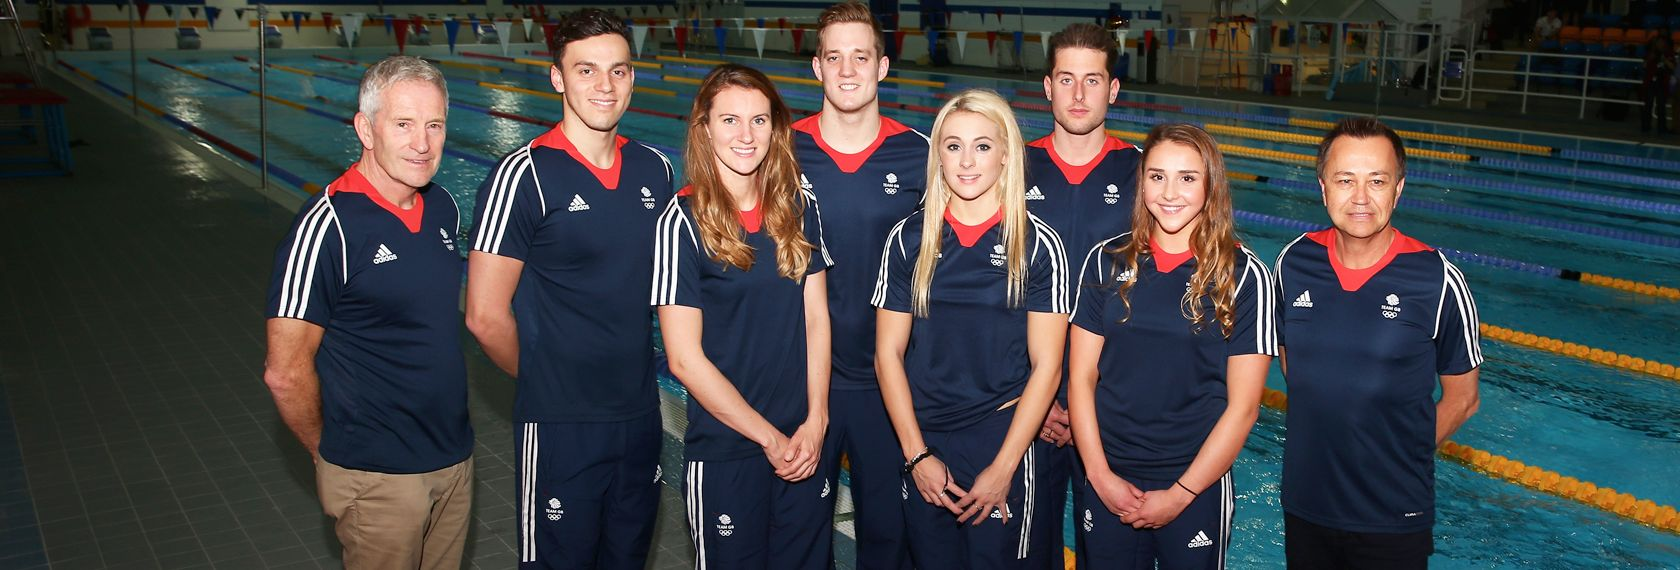 Team GB Swimmers Olympic Selection Day.jpg